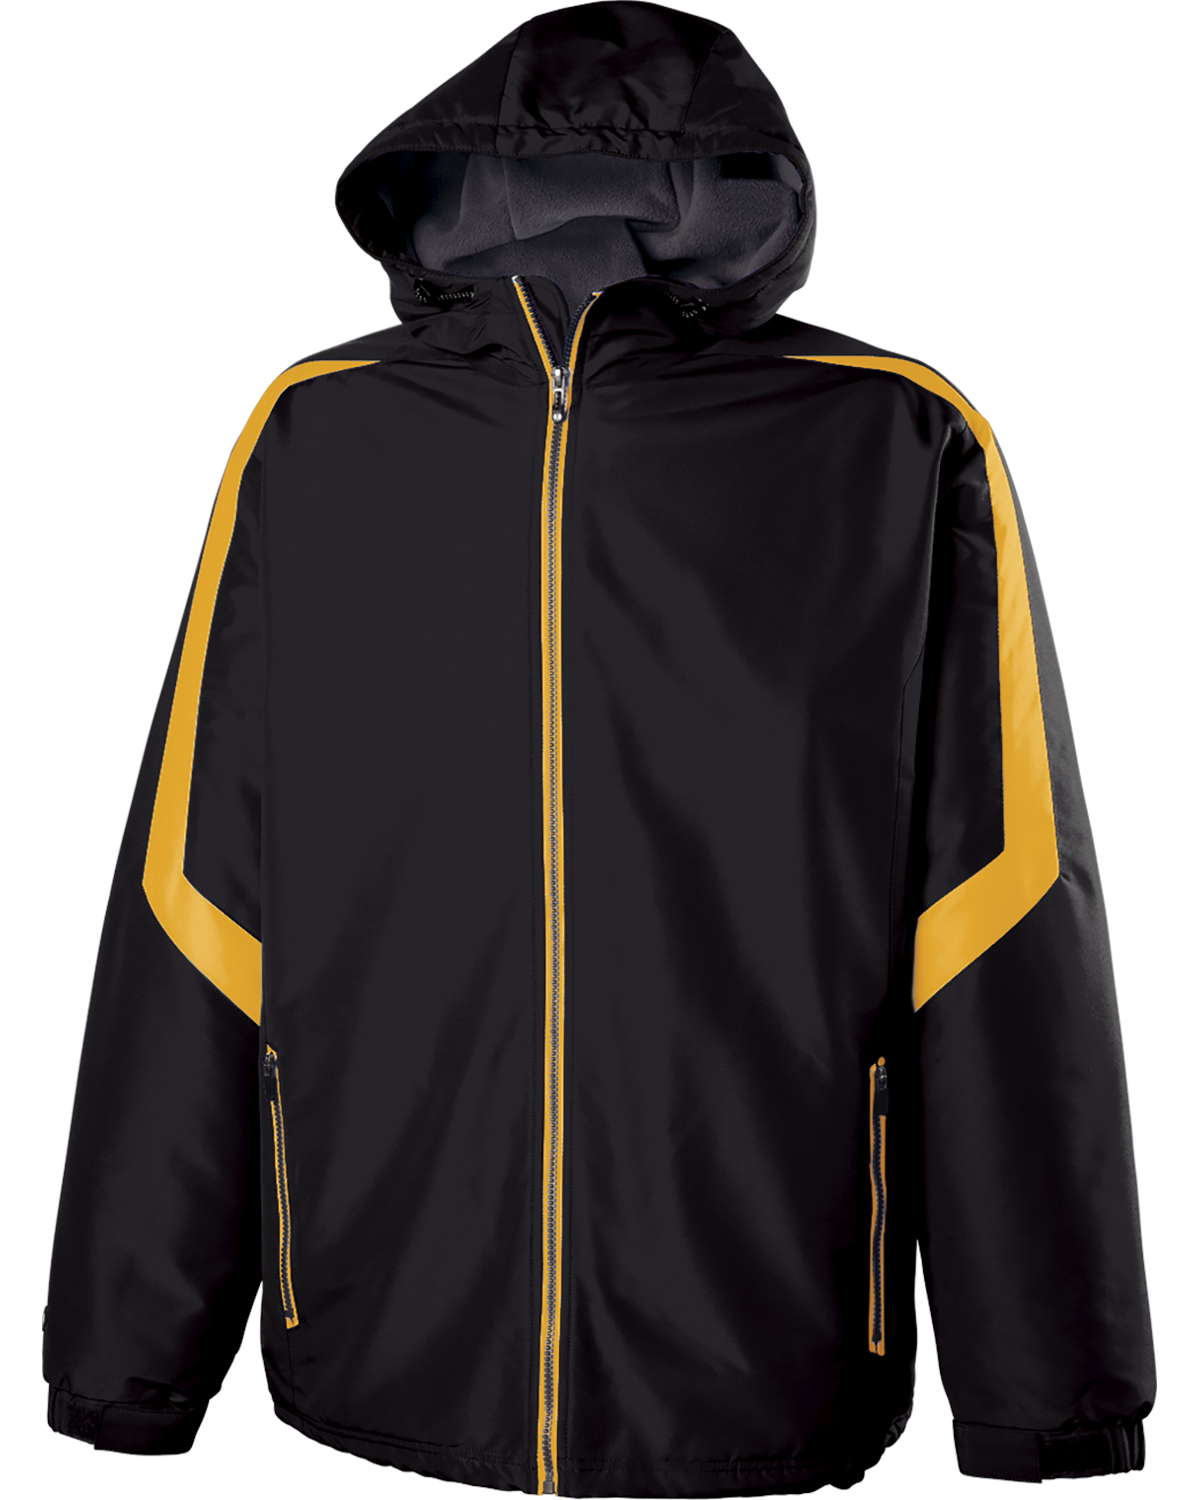 Holloway 229059 - Adult Polyester Full Zip Charger Jacket